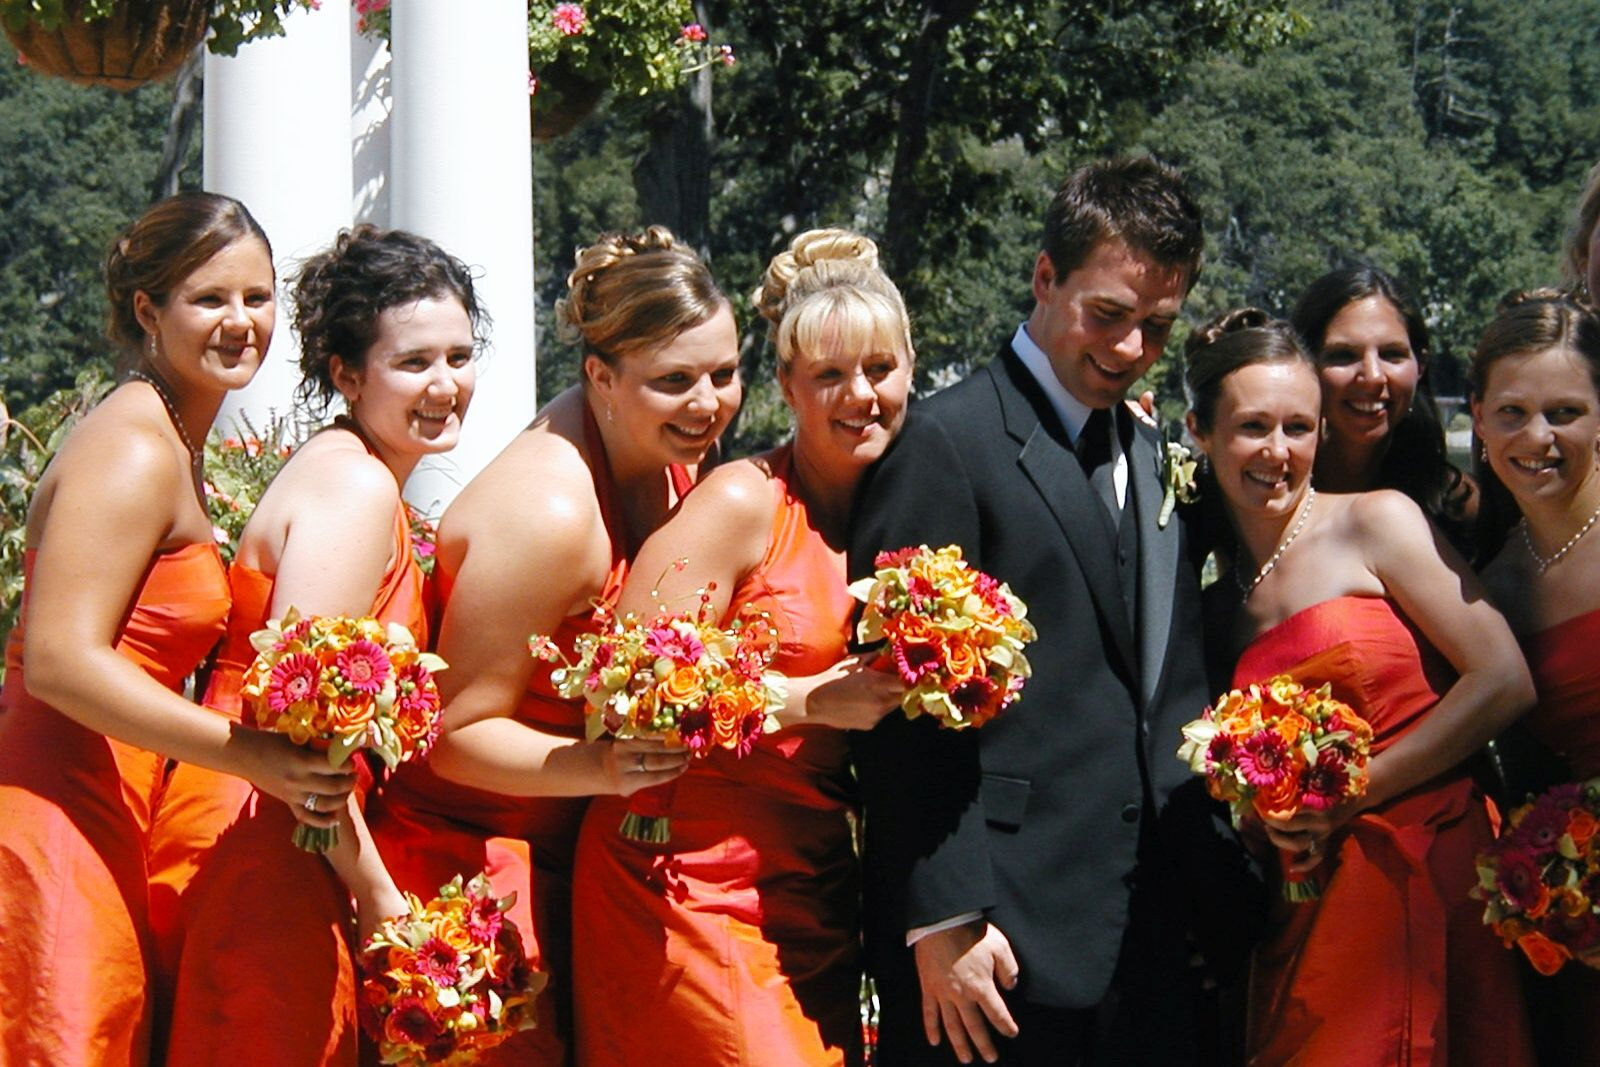 Bridesmaids in orange dresses with one of the groomsmen